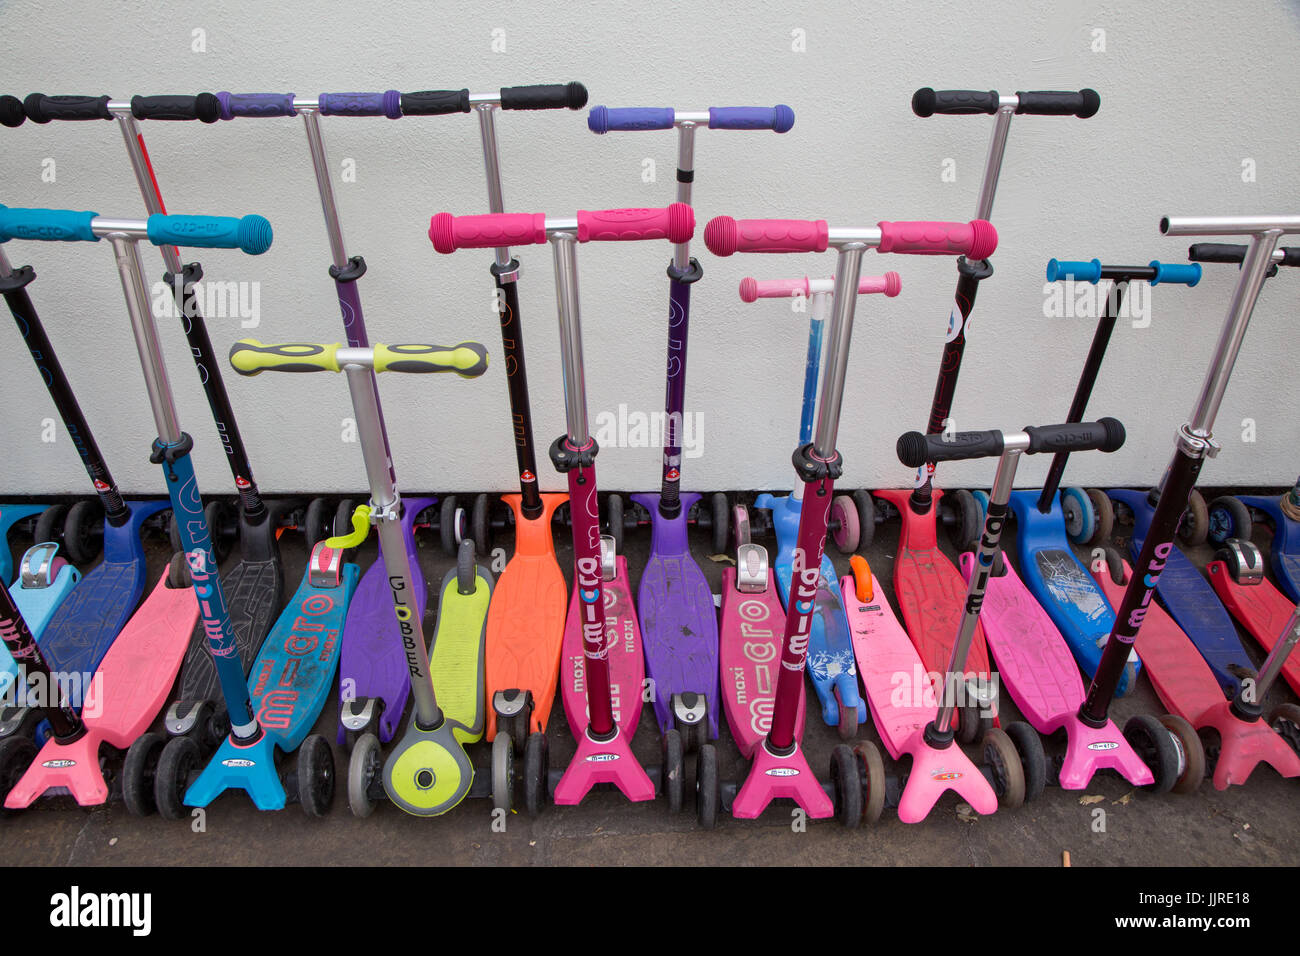 Scooters parked in a school playground in London - Stock Image